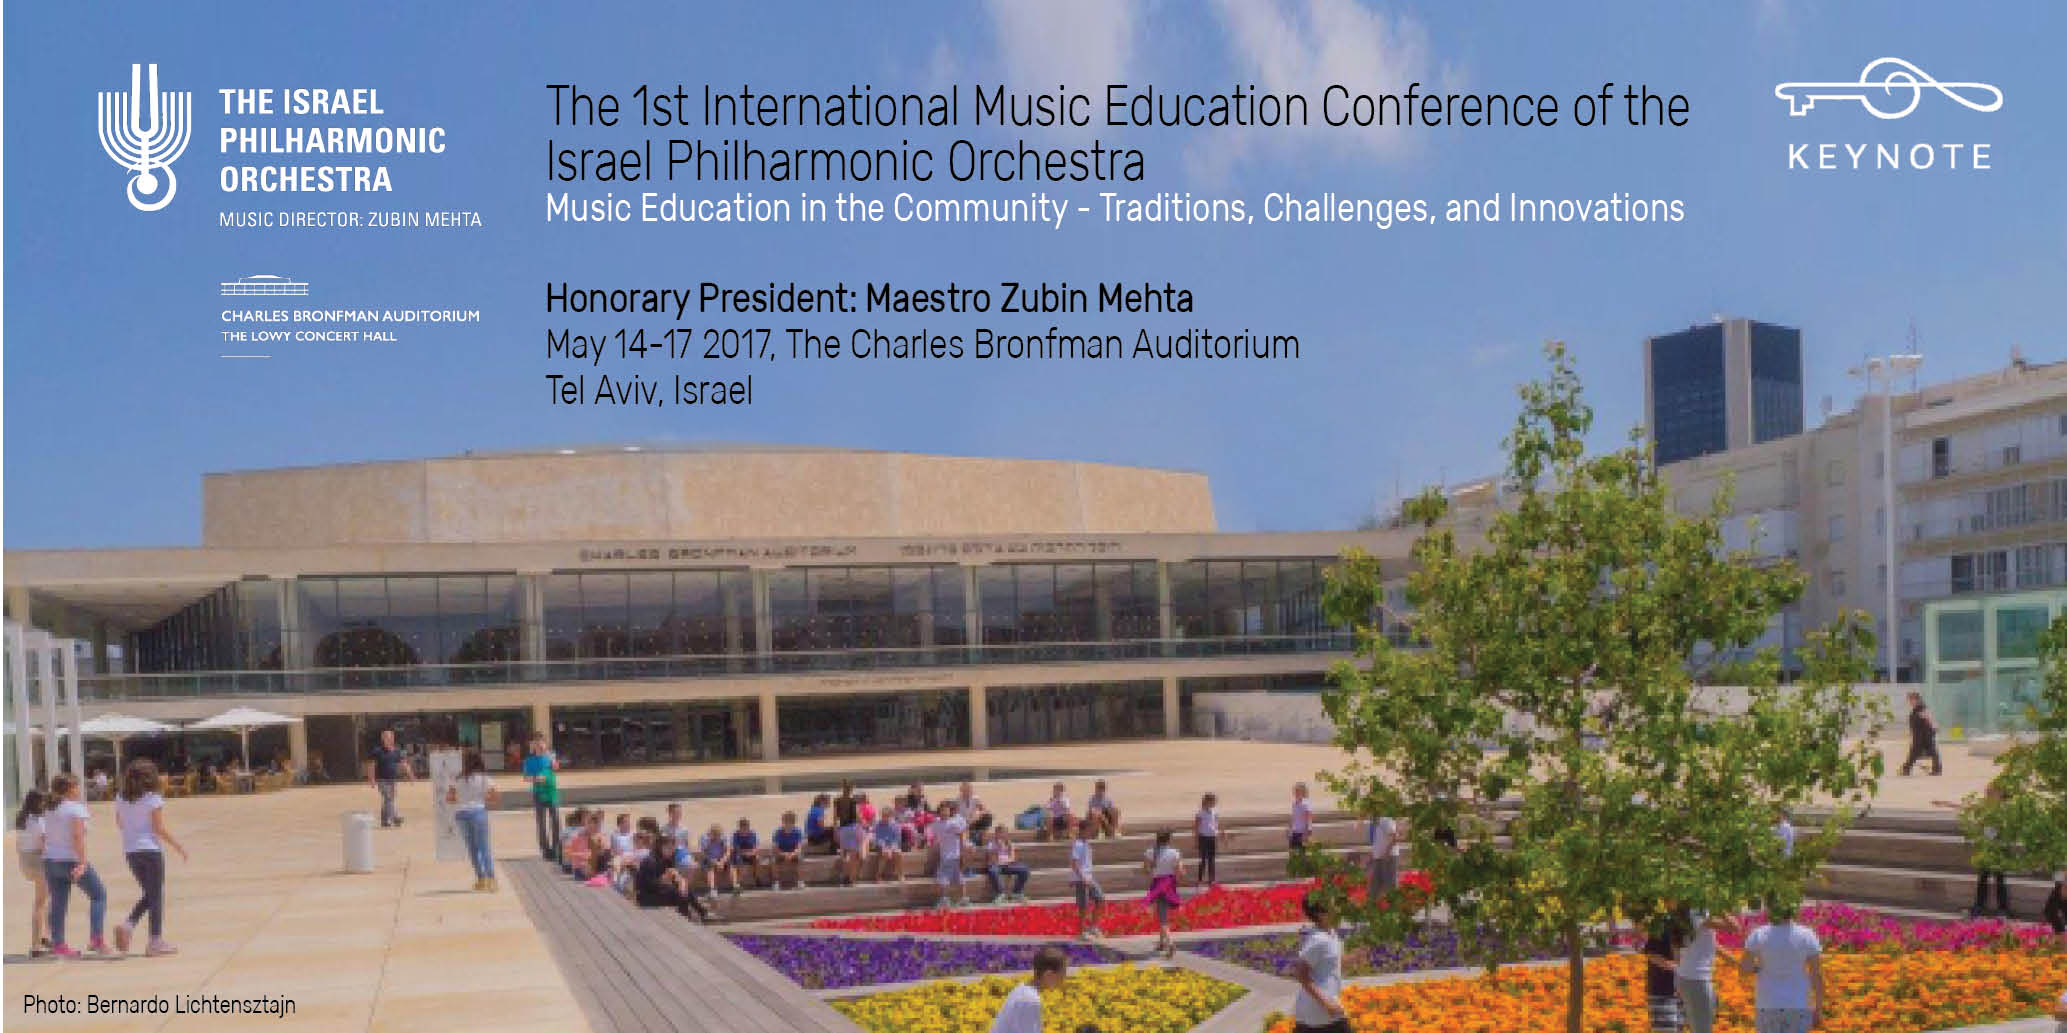 The First International Music Education Conference of the Israel Philharmonic Orchestra